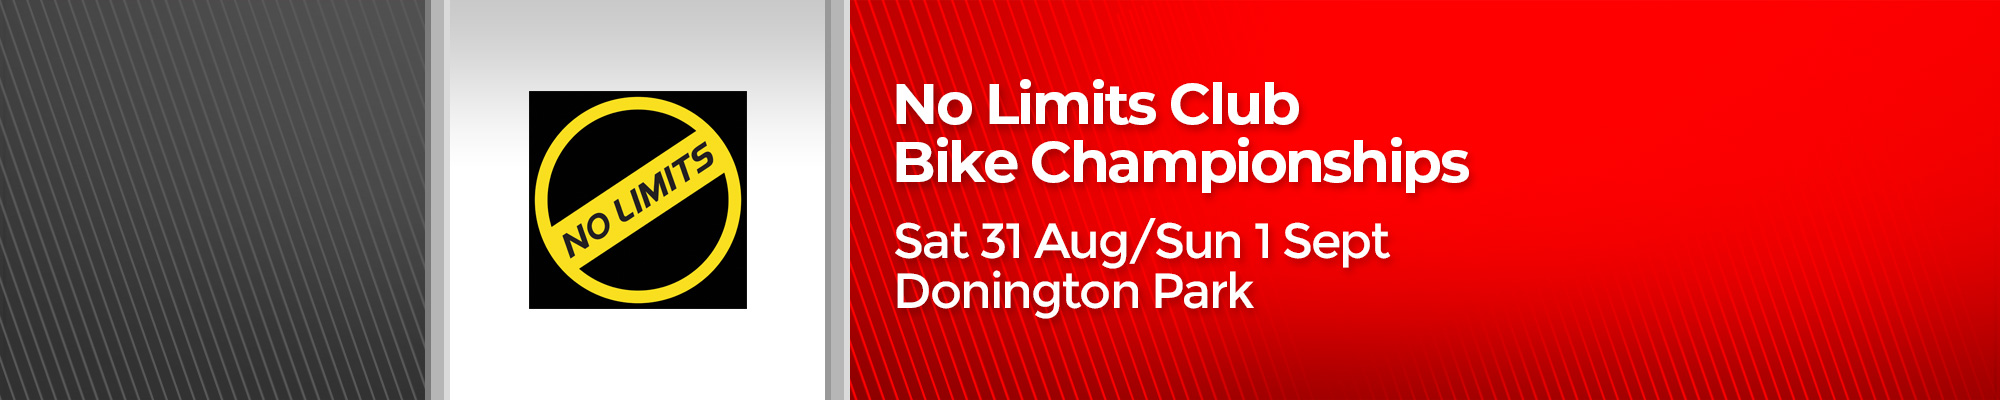 No Limits Club Bike Championships